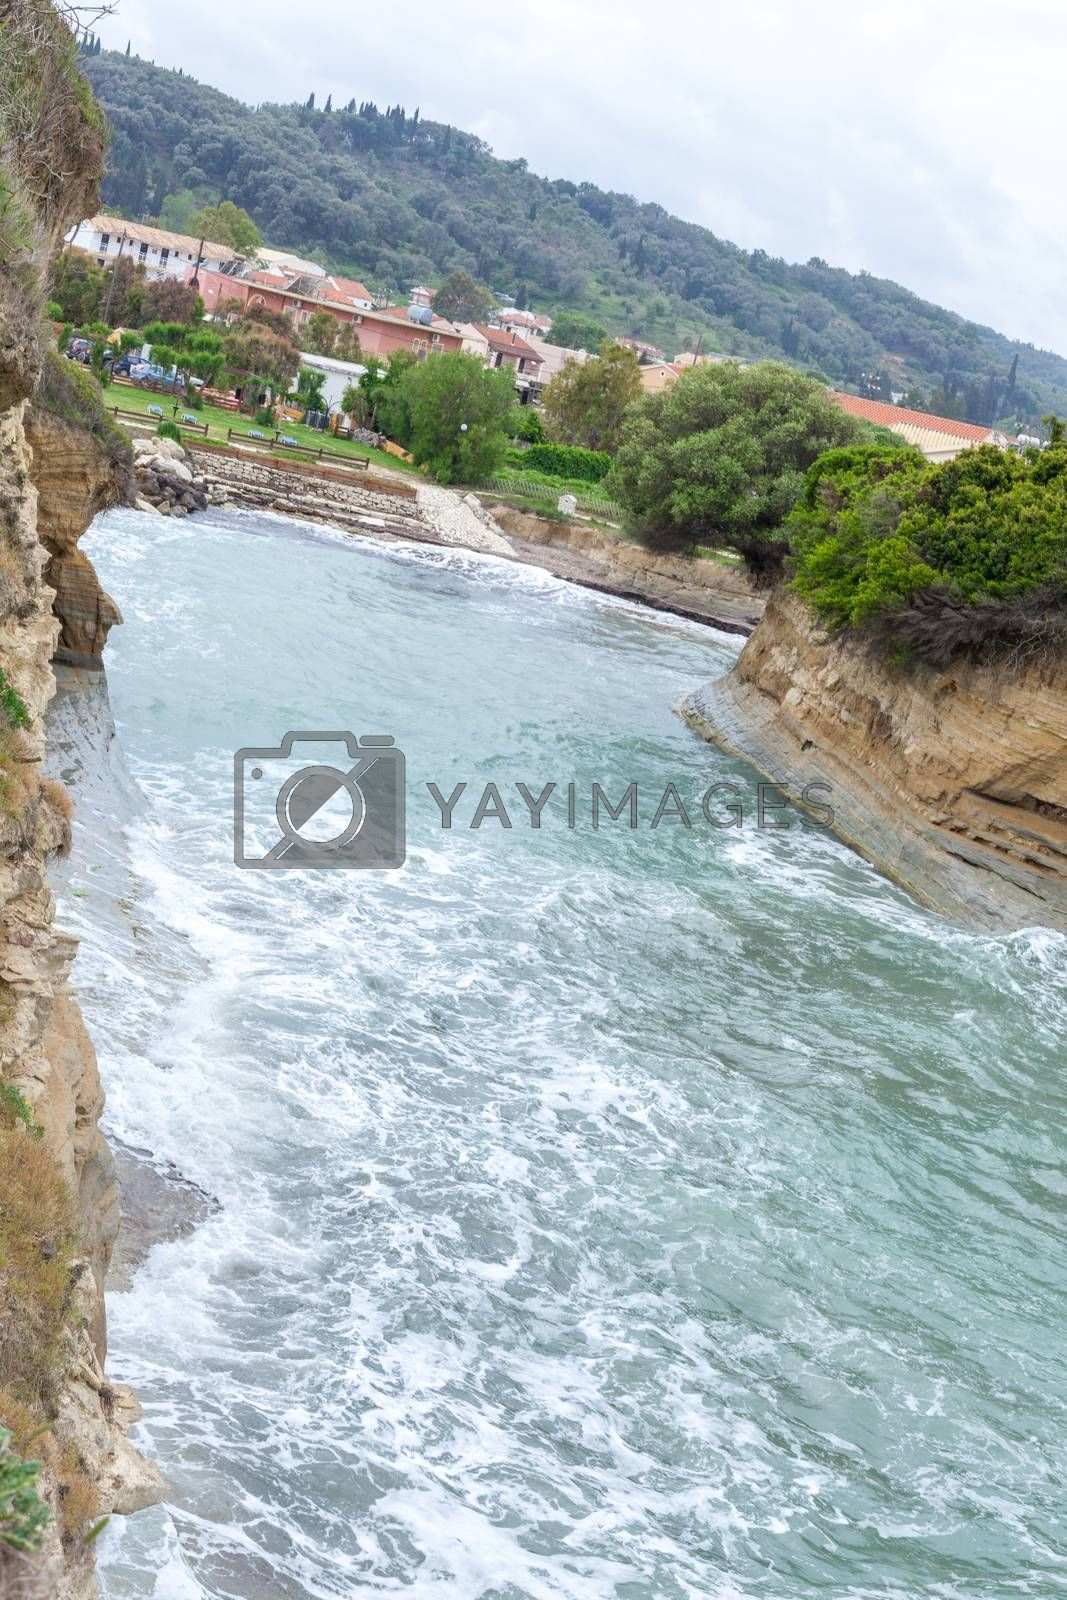 River flowing beside the hill. Water rushing down the stream. Houses built near the riverbed.Scenic view of rural area. Typical scenery of countryside living